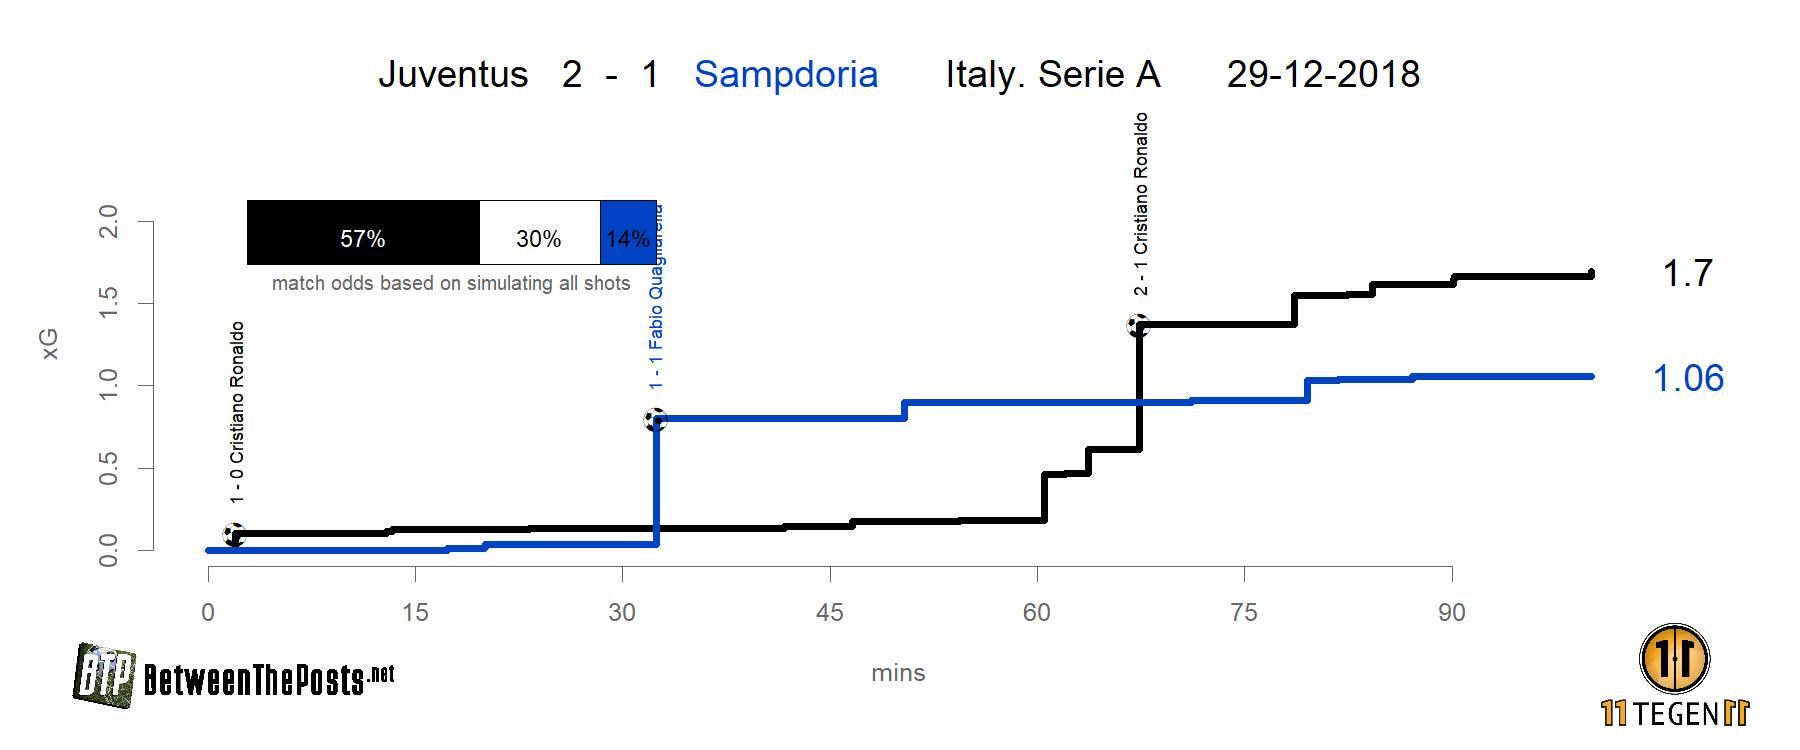 Expected goals plot Juventus Sampdoria Serie A